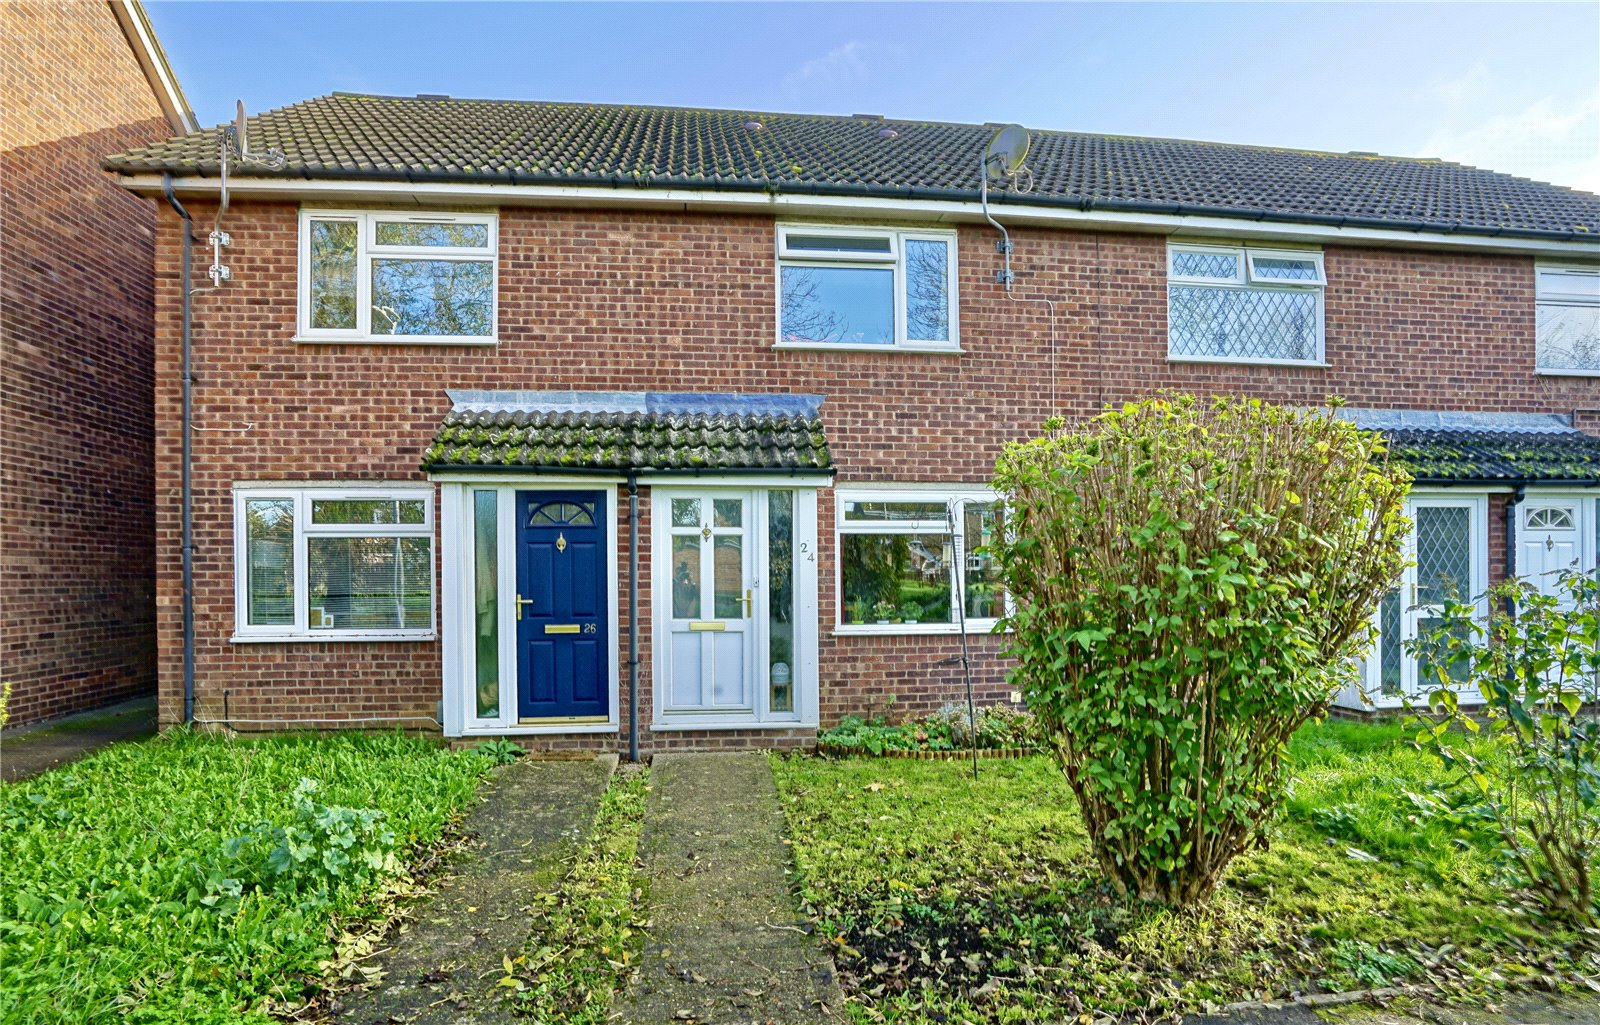 2 bed house for sale in Eaton Ford, PE19